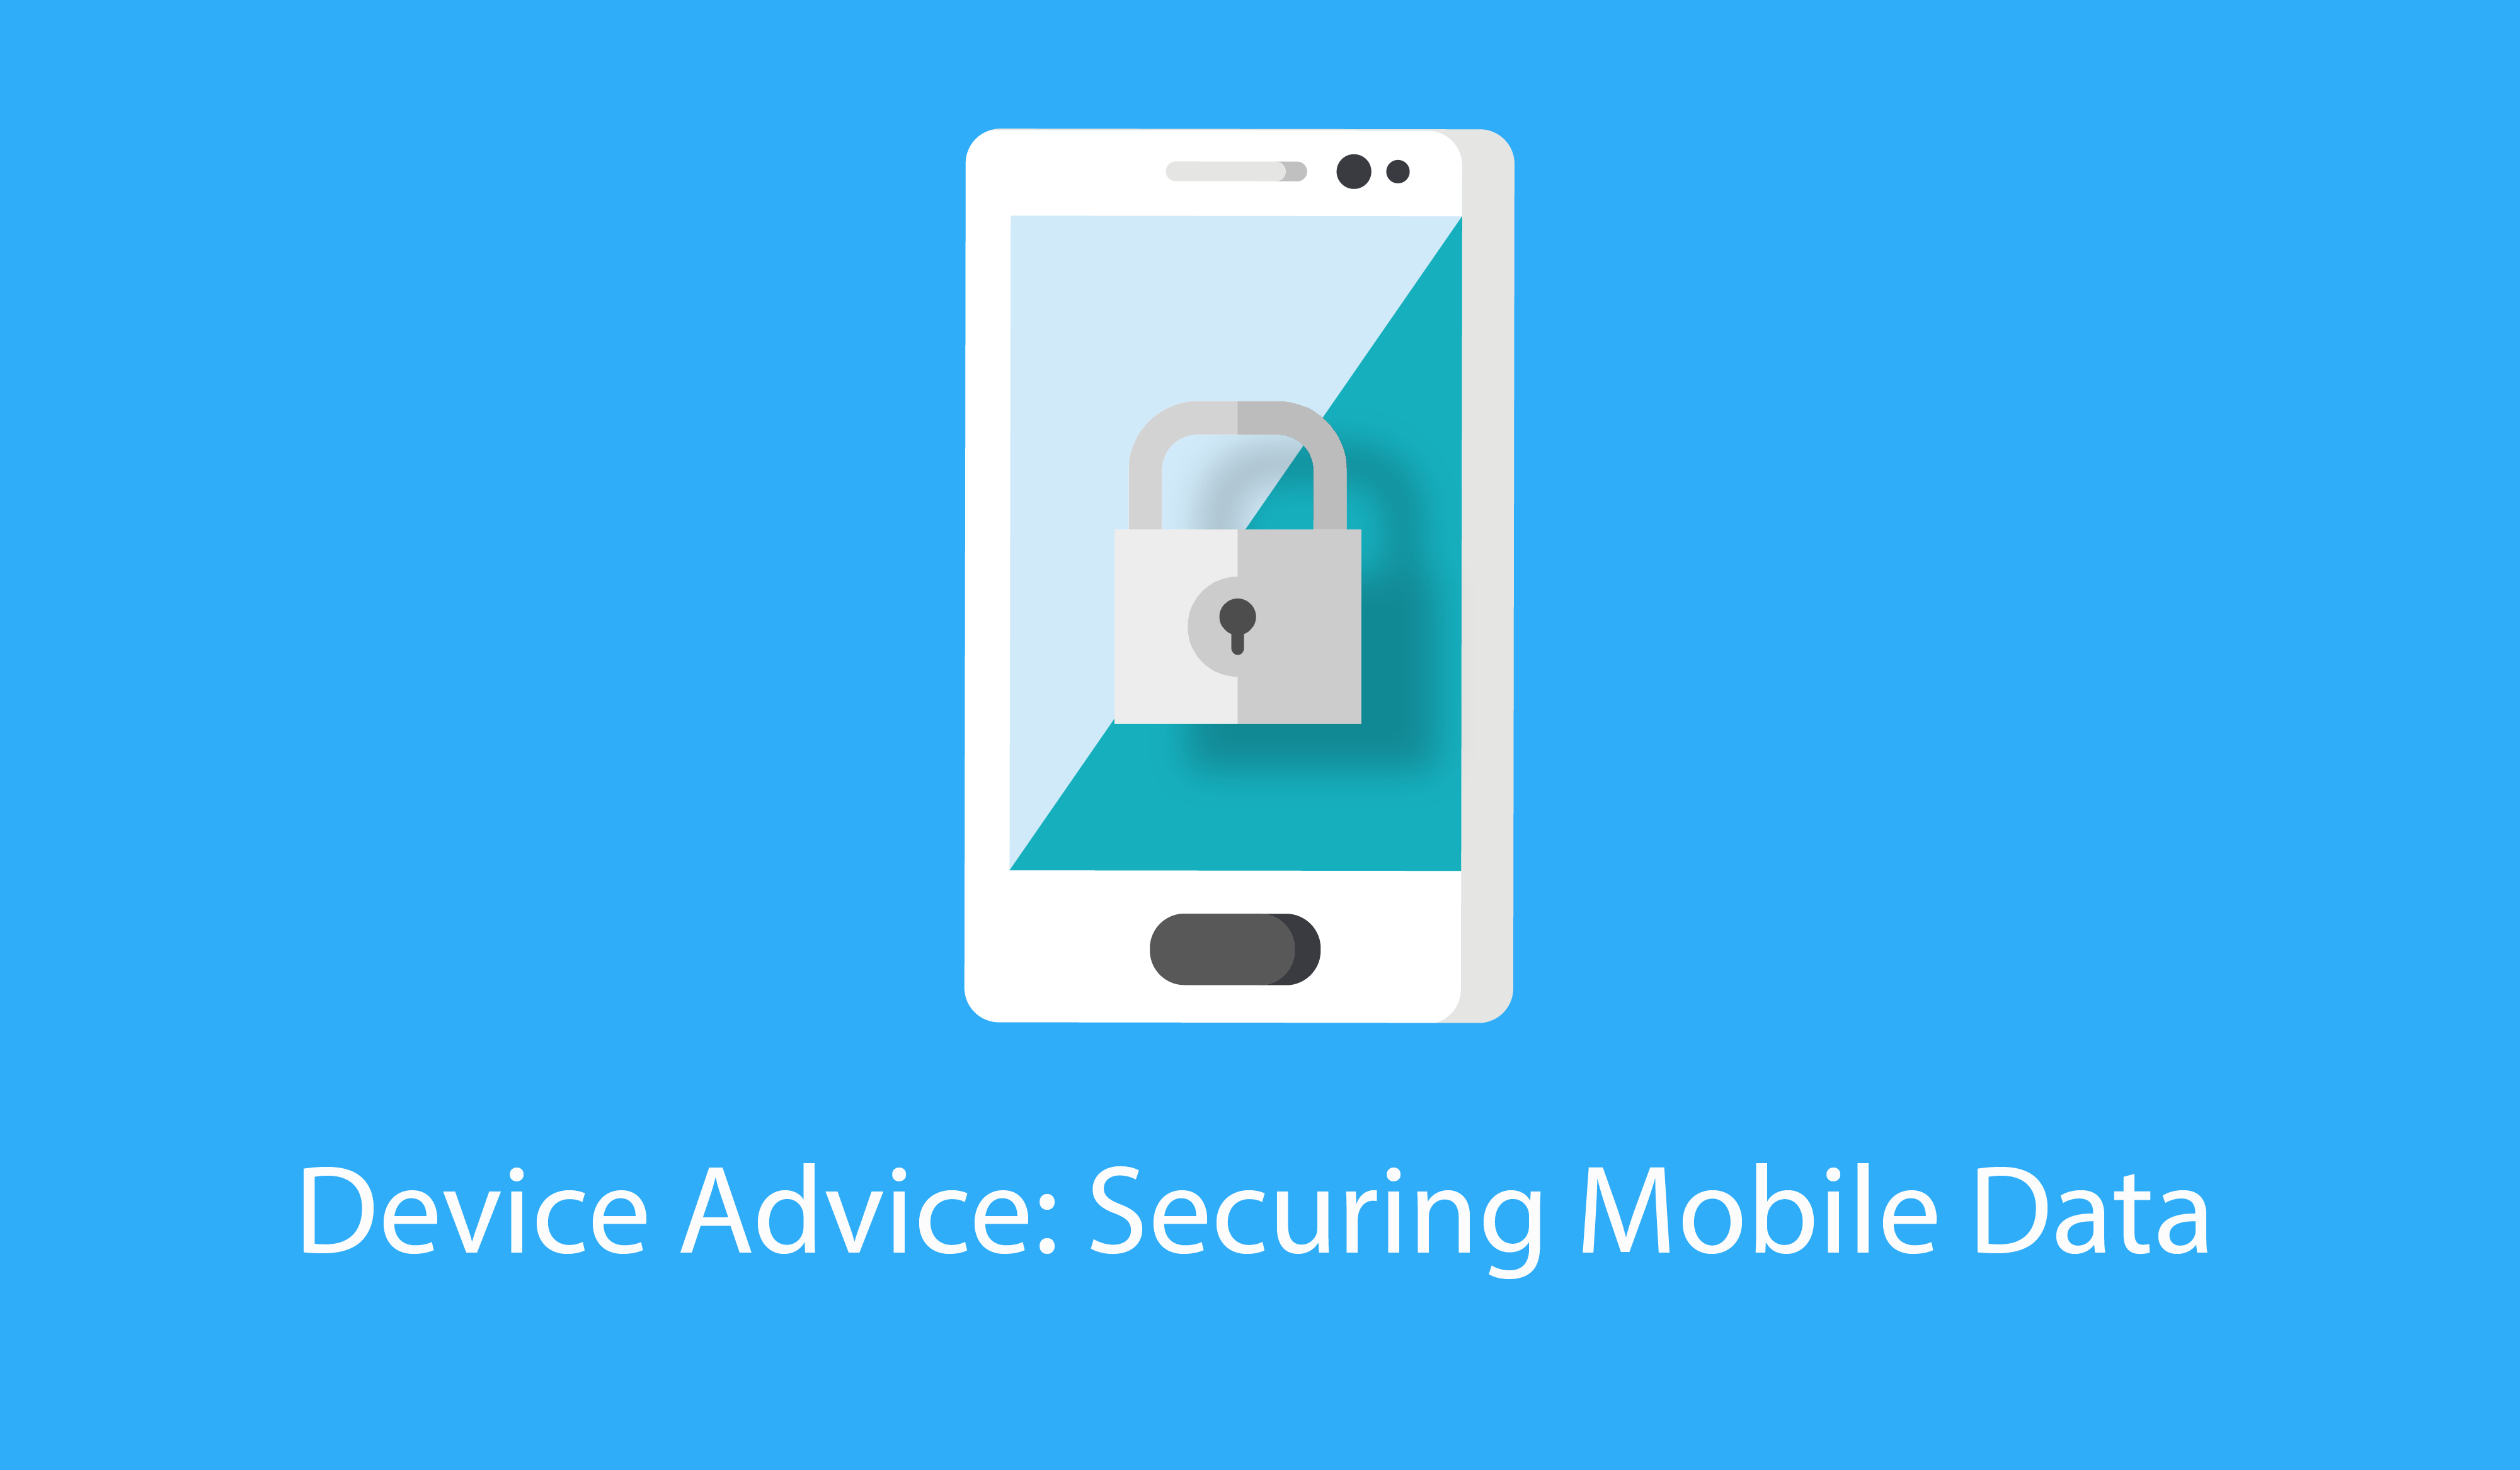 Device Advice: Securing Mobile Data